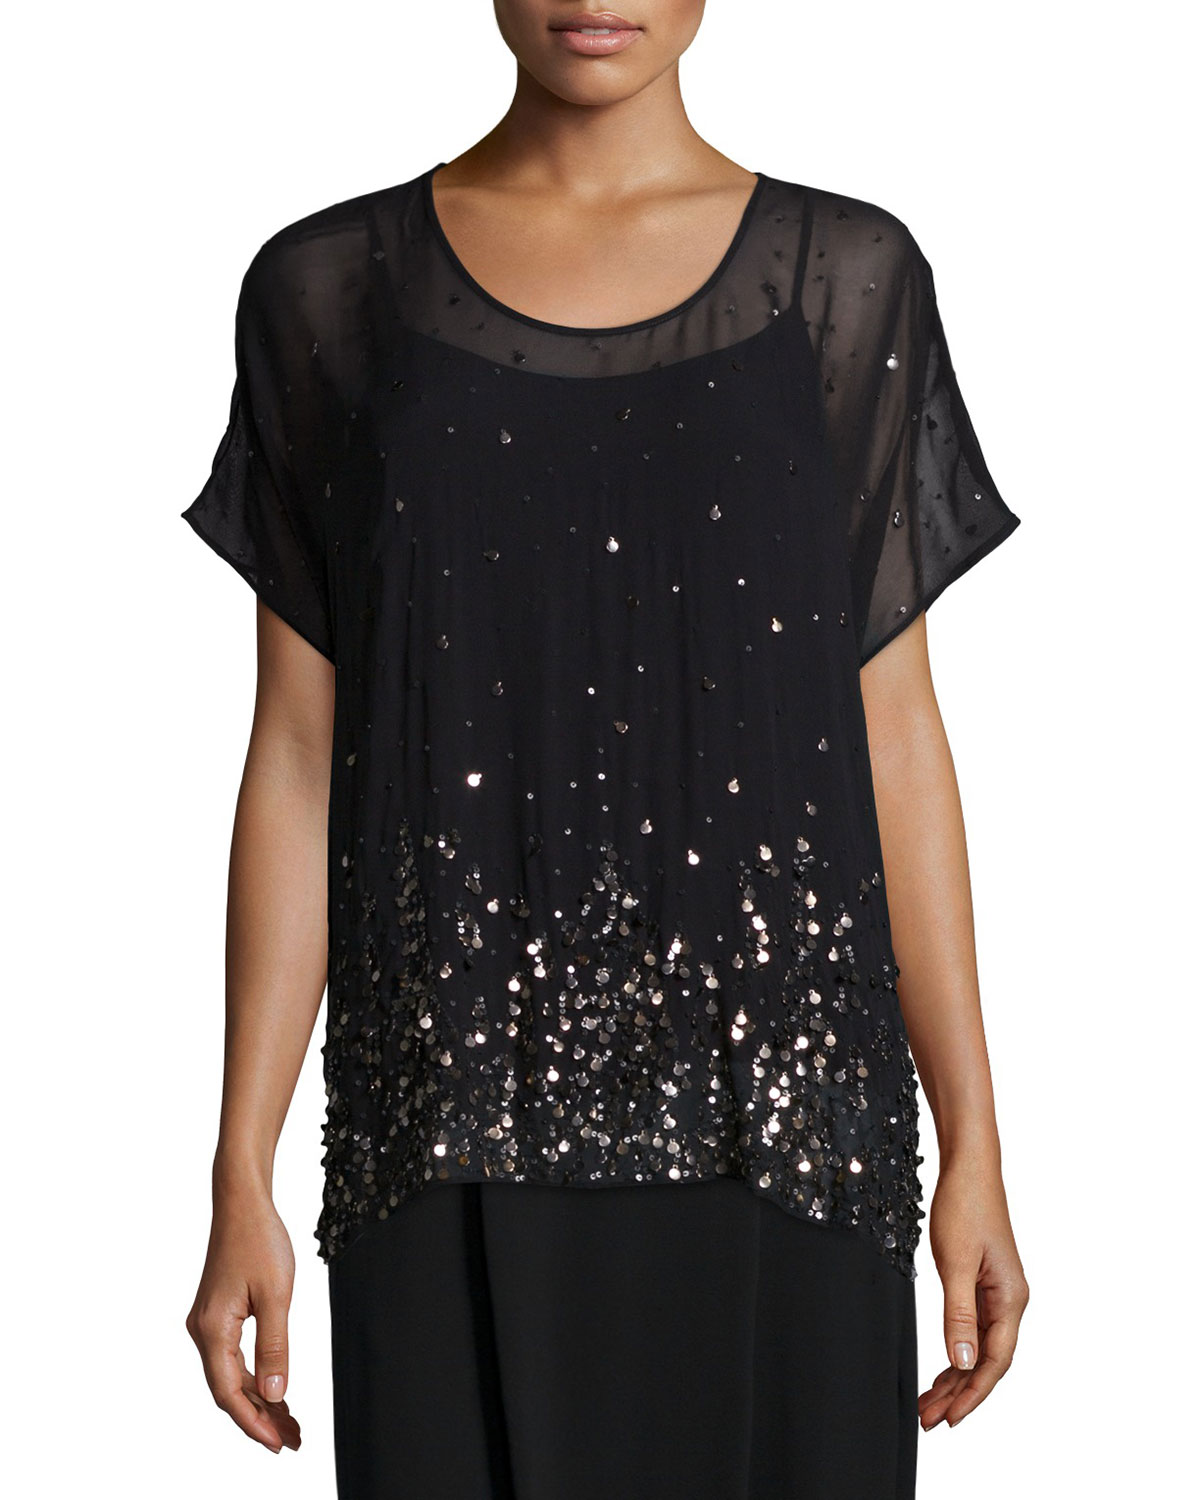 Short-Sleeve Dancing Sequined Top W/ Cami